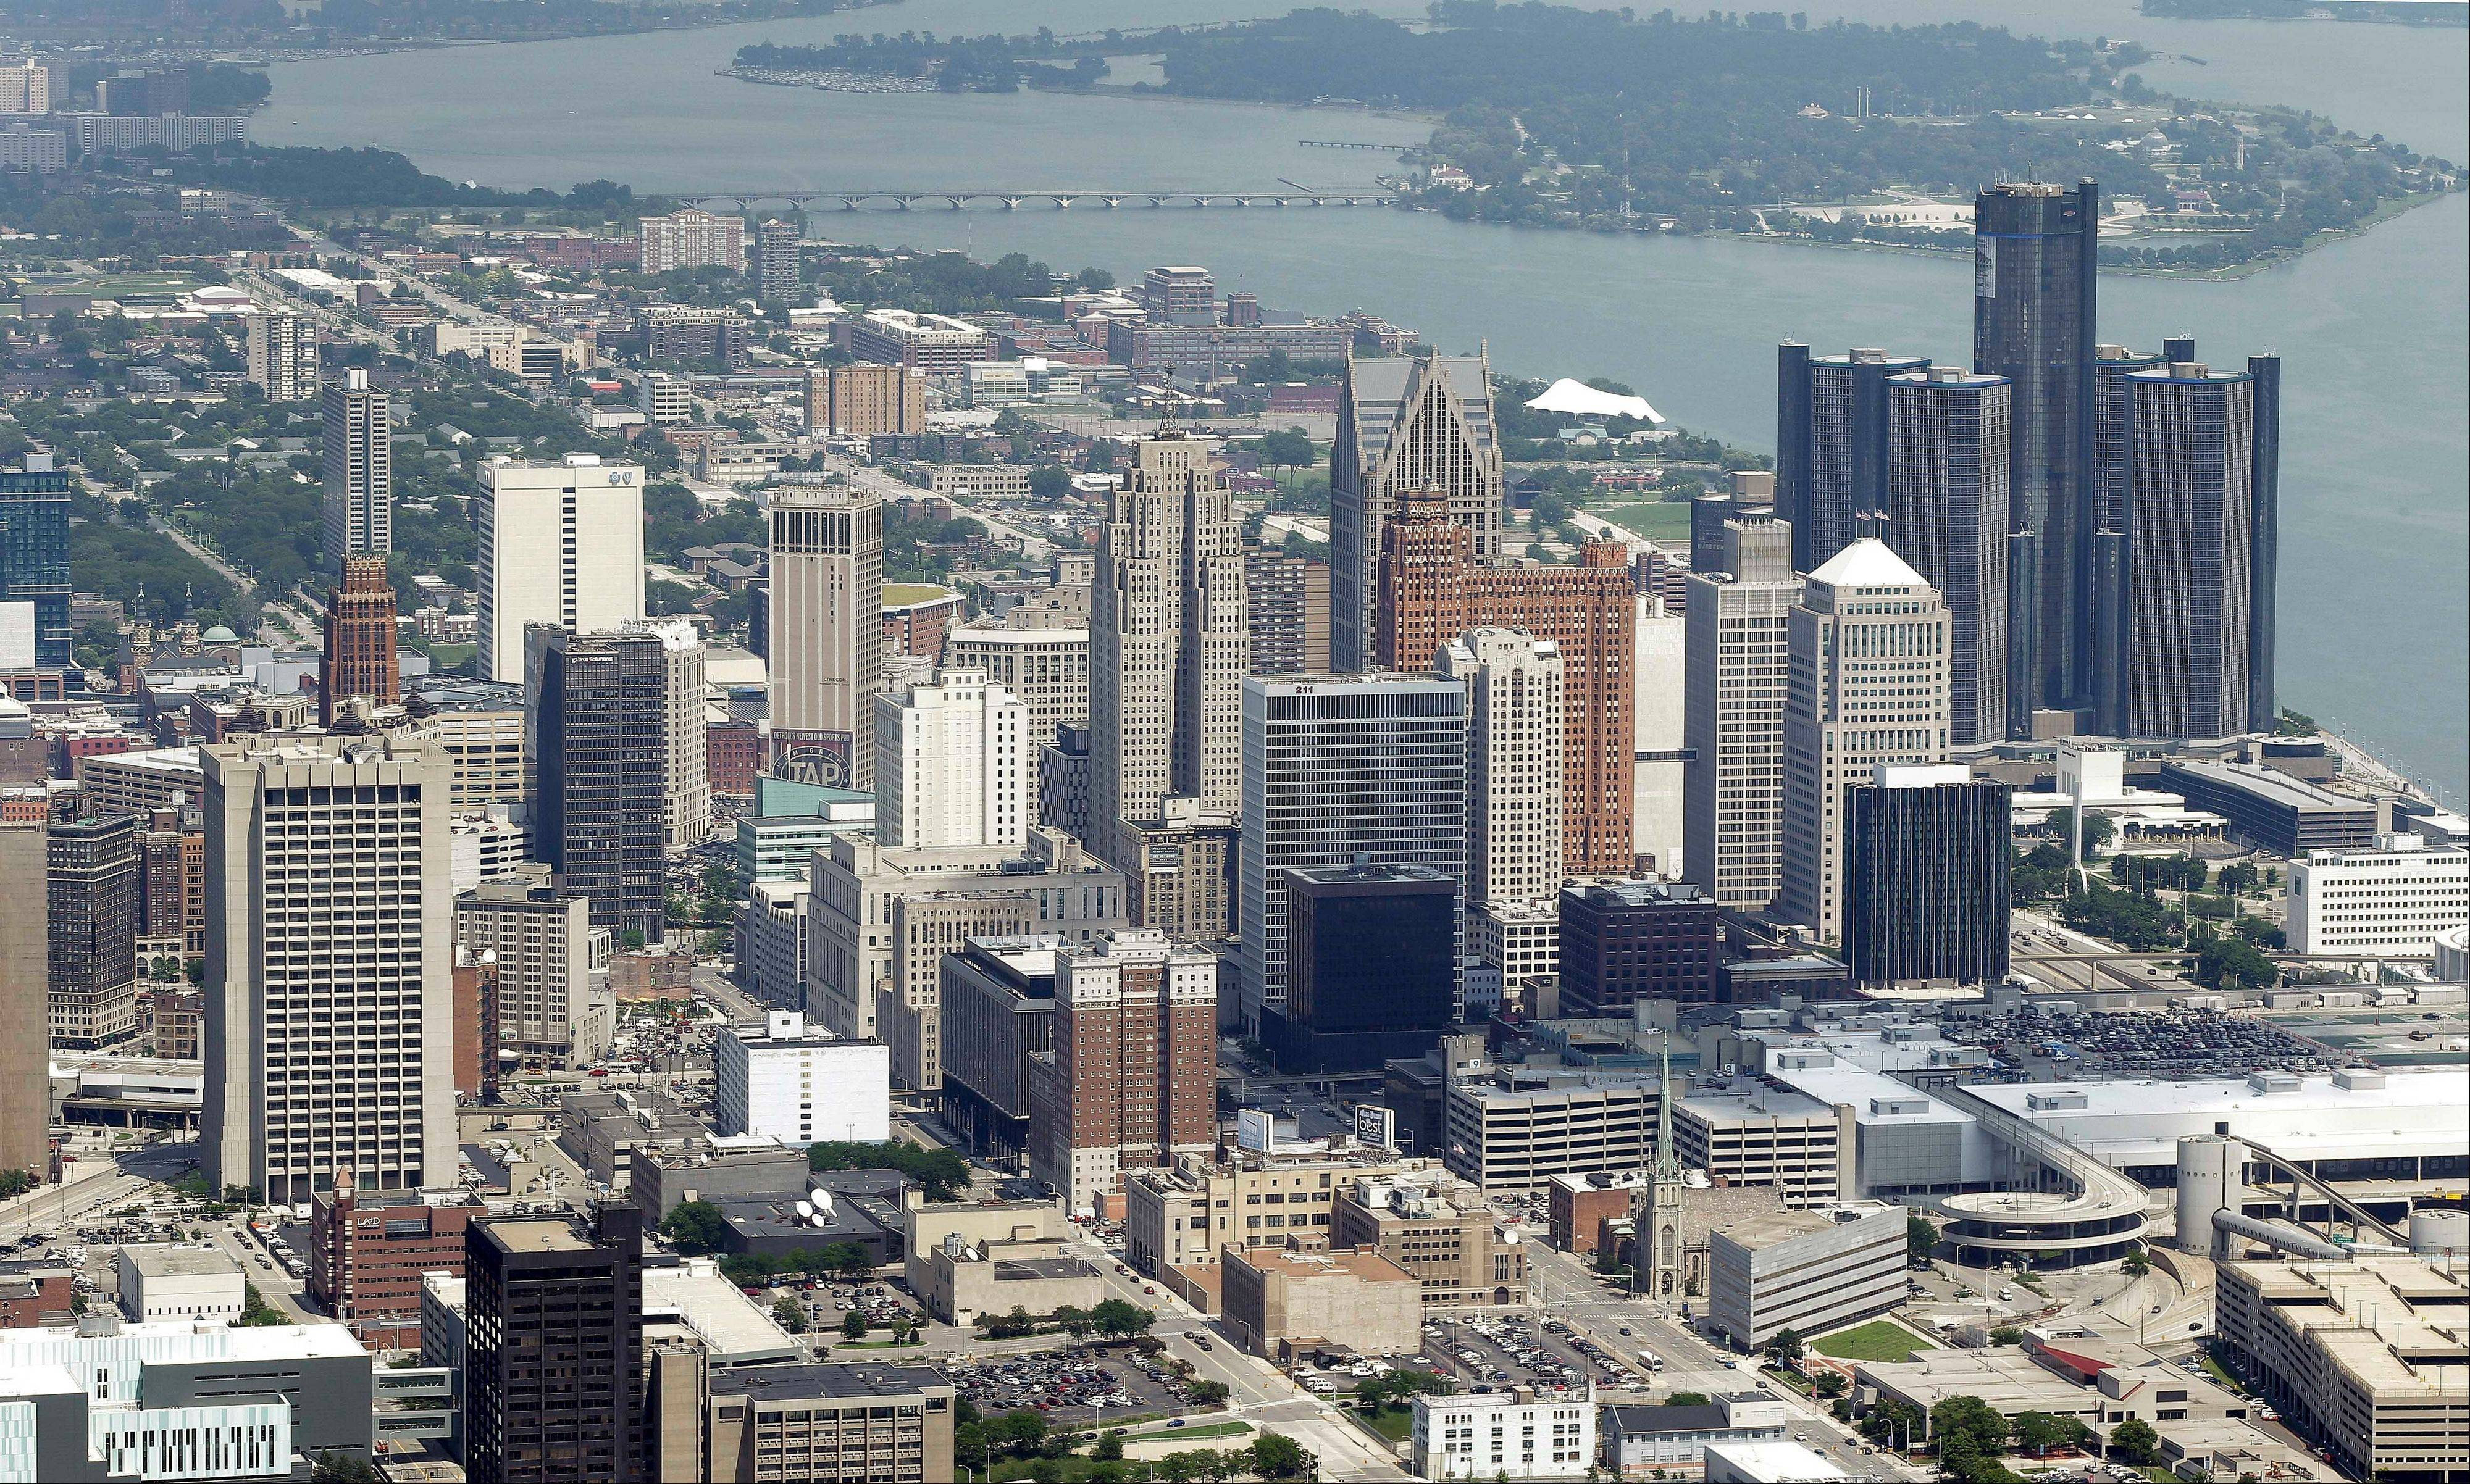 Detroit became the largest U.S. city to file for bankruptcy, raising a flurry of questions about what happens next.